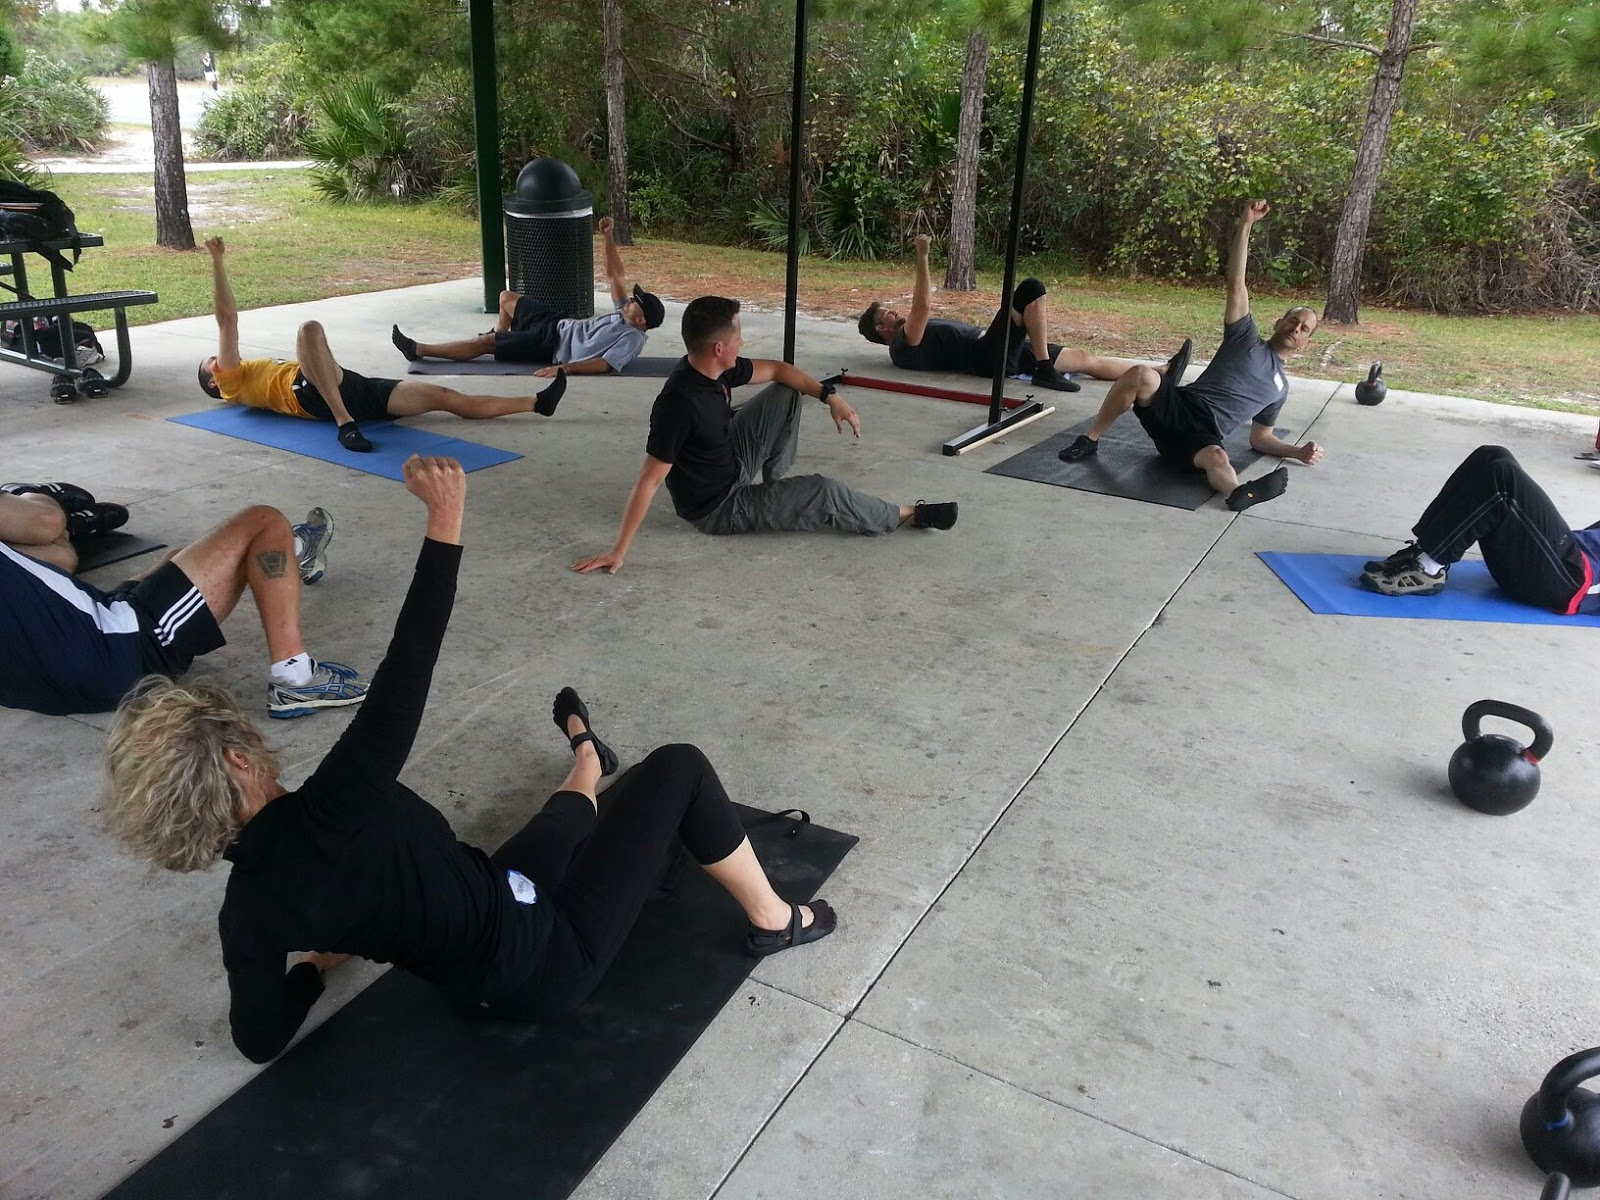 winter garden yoga hardstyle kettlebell makes it to wgy